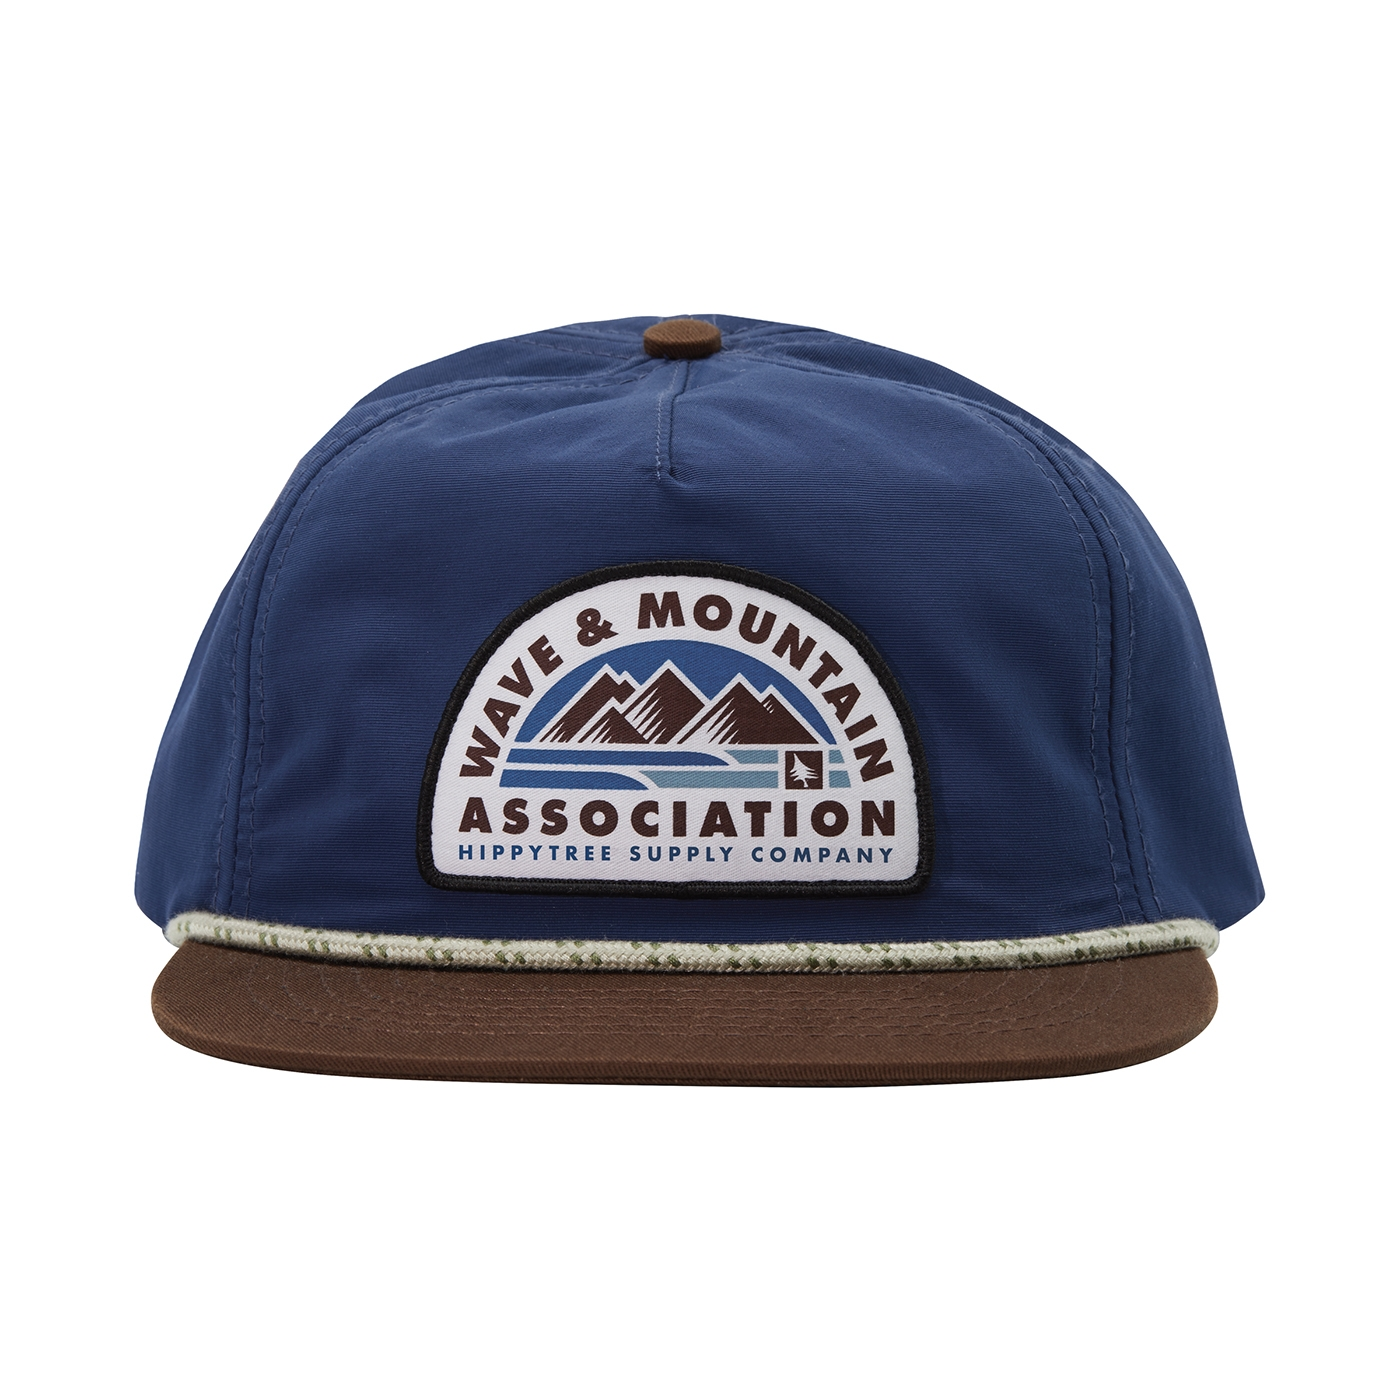 4c841c2d2a1f5 Association Hat Navy   HippyTree